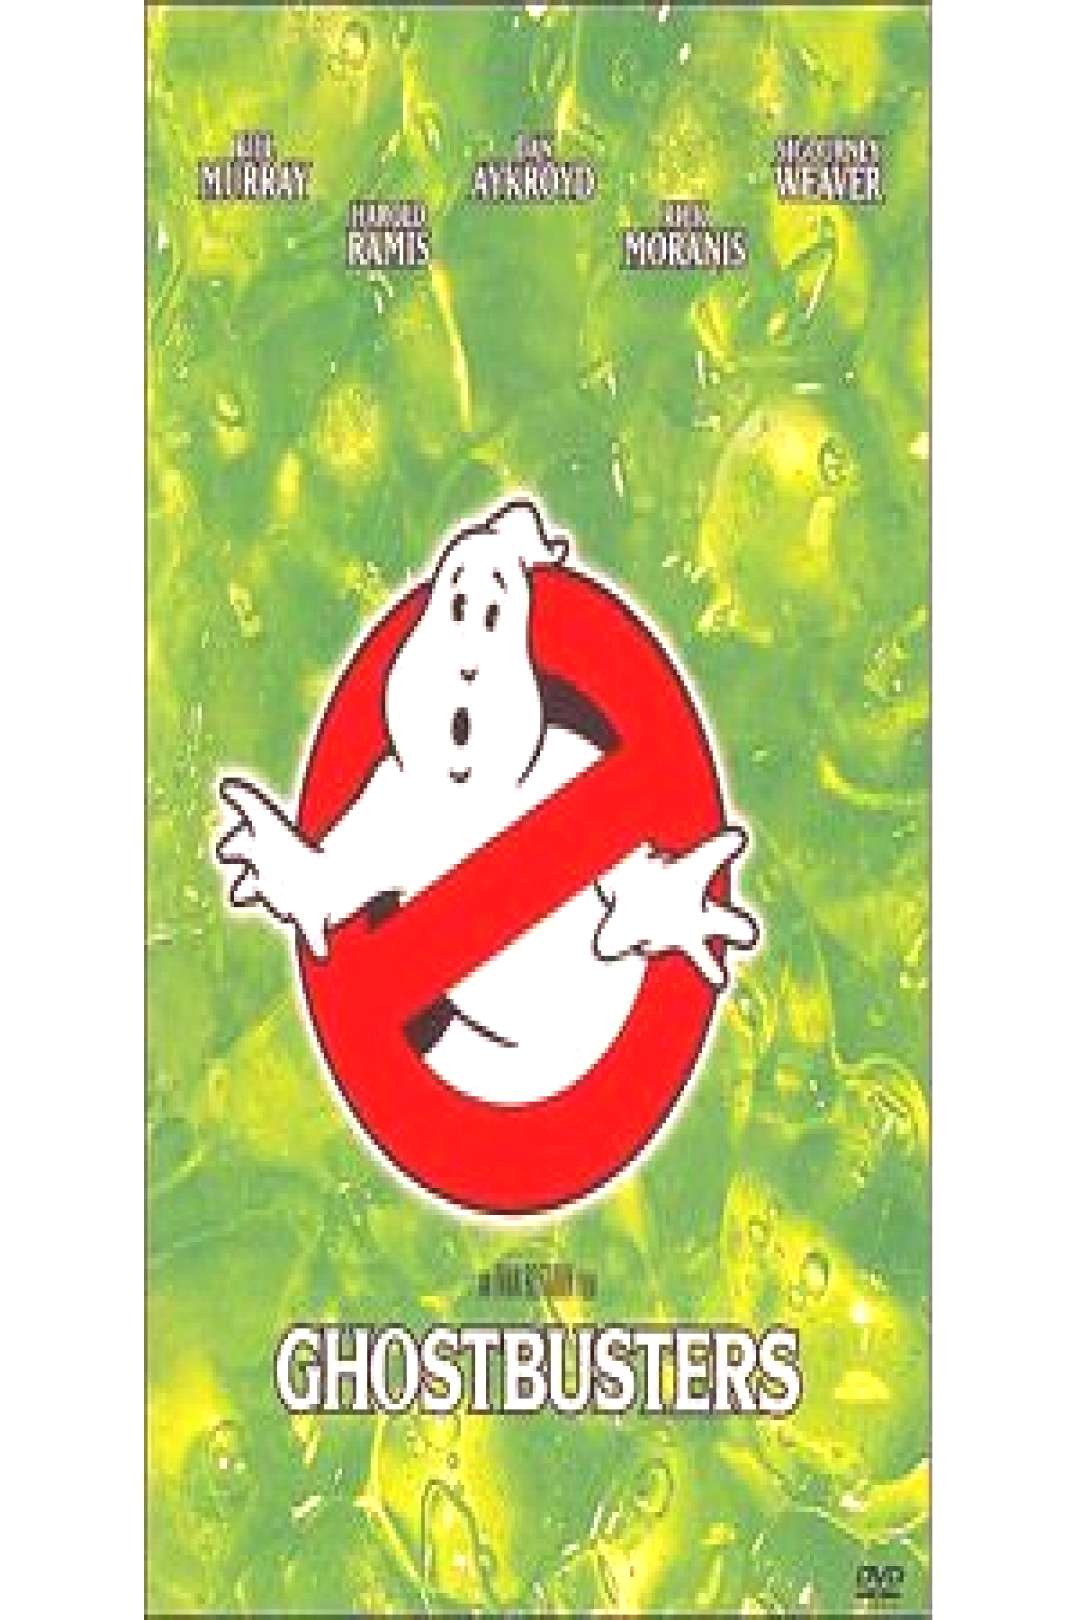 Ghostbusters (DVD) - #dvd